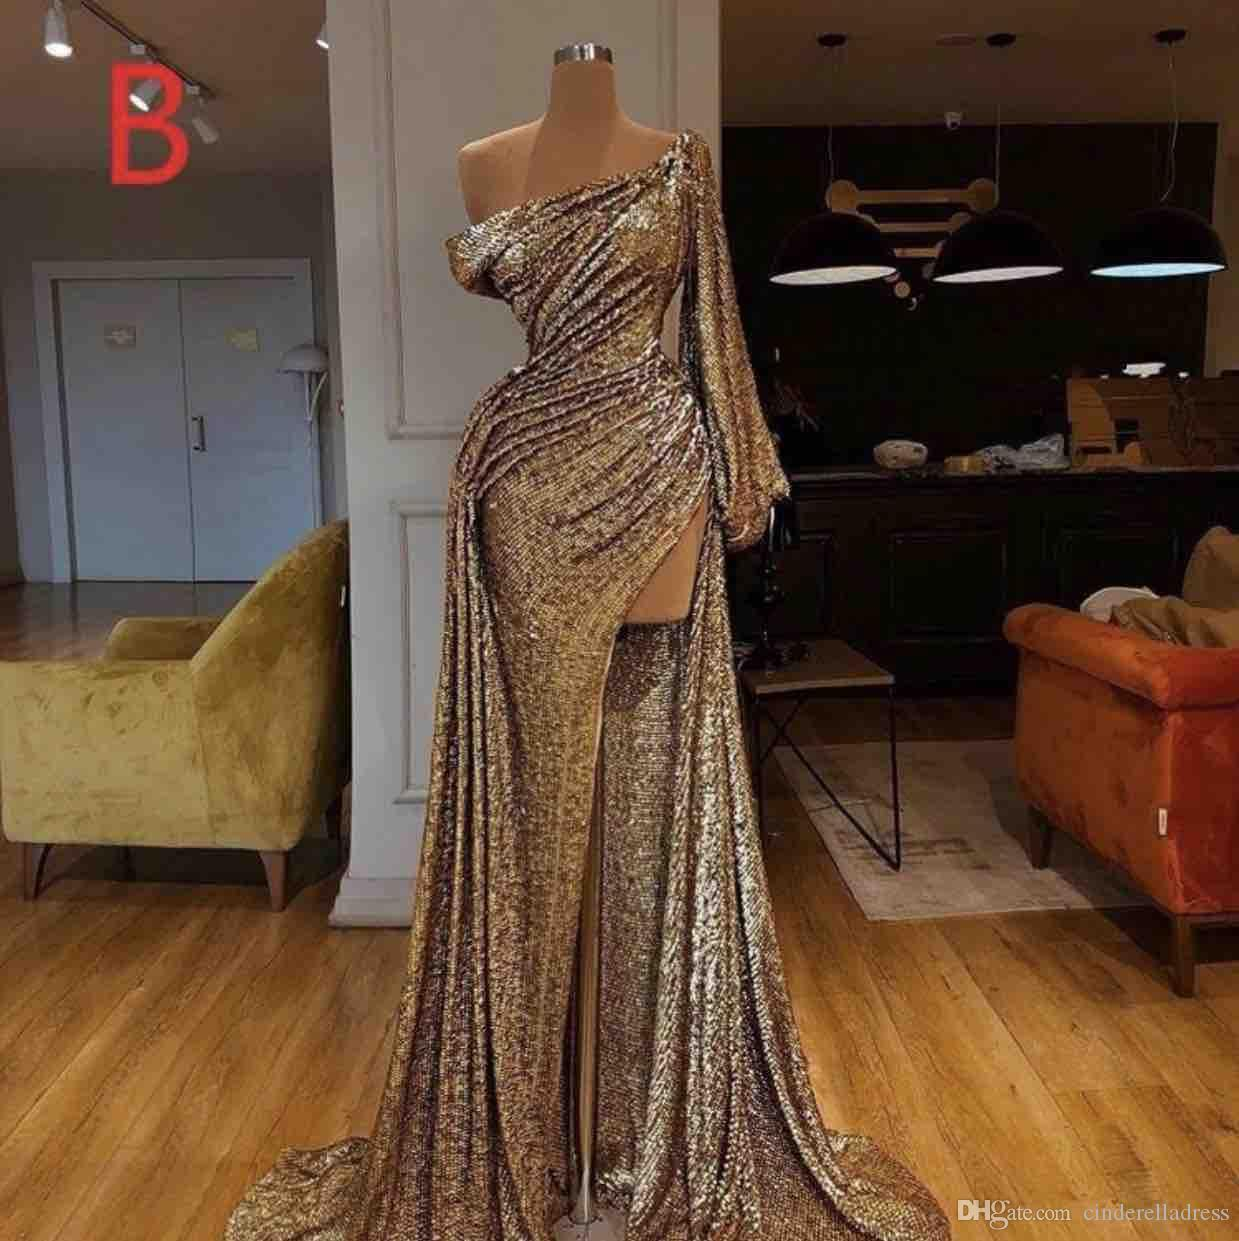 2020 Sexy Long Sleeve Gold Mermaid Reflective Prom Dresses Sexy High Split Sequined Formal Evening Gowns robe de soiree Abendkleider